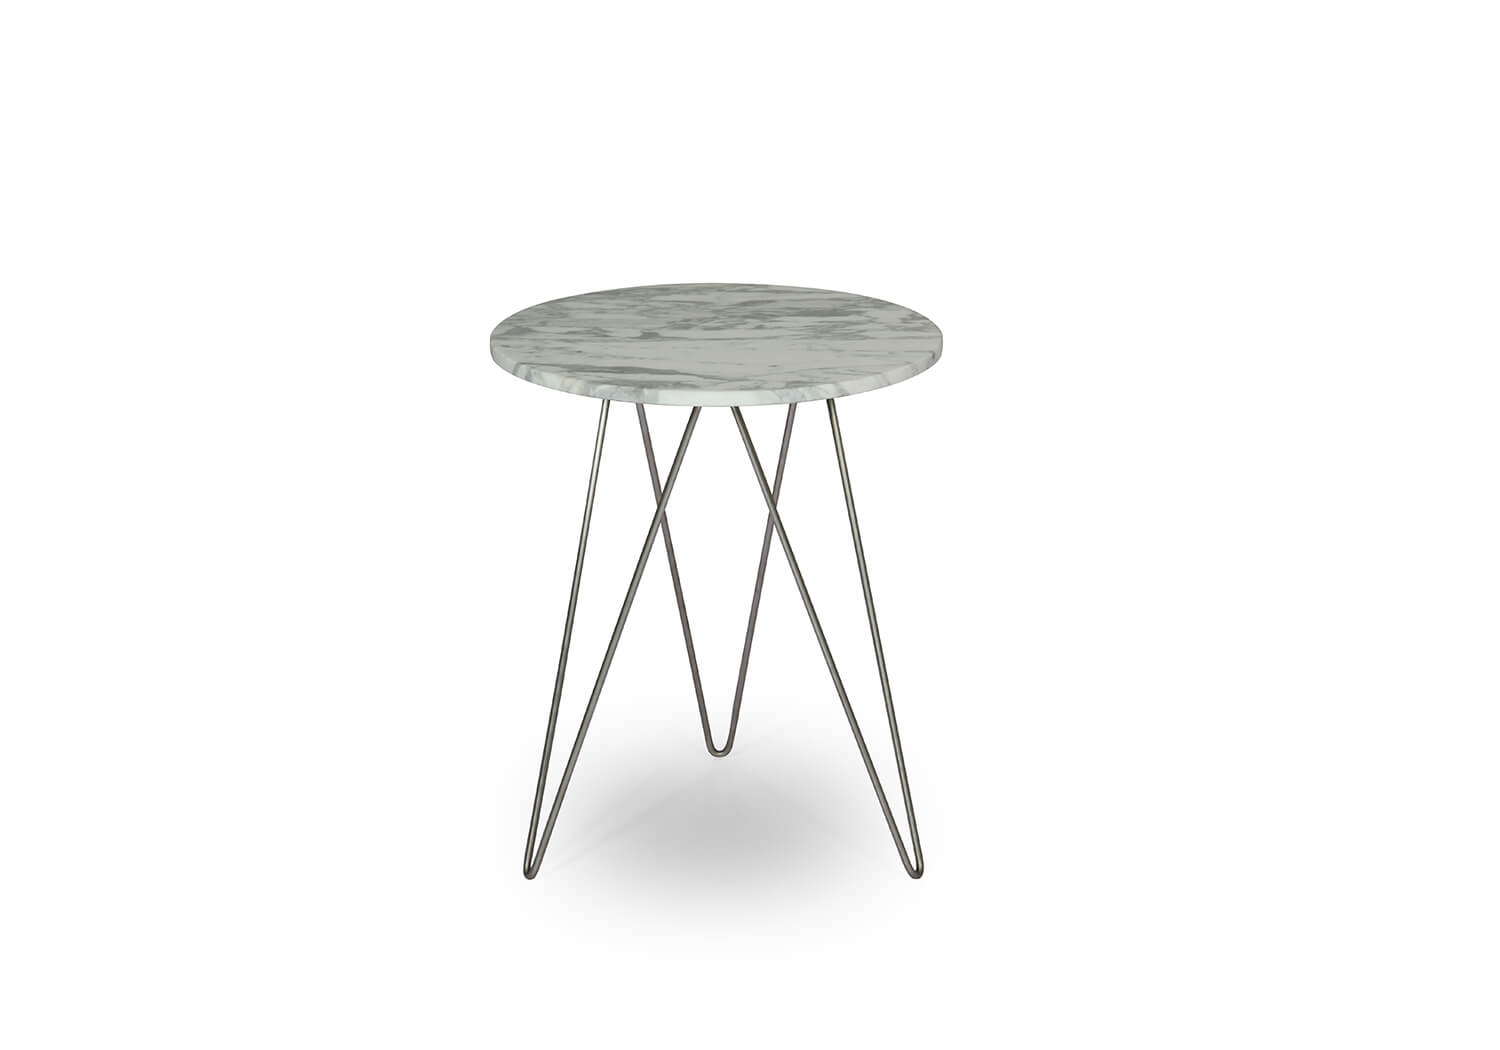 Marble Top + Stainless Steel Base